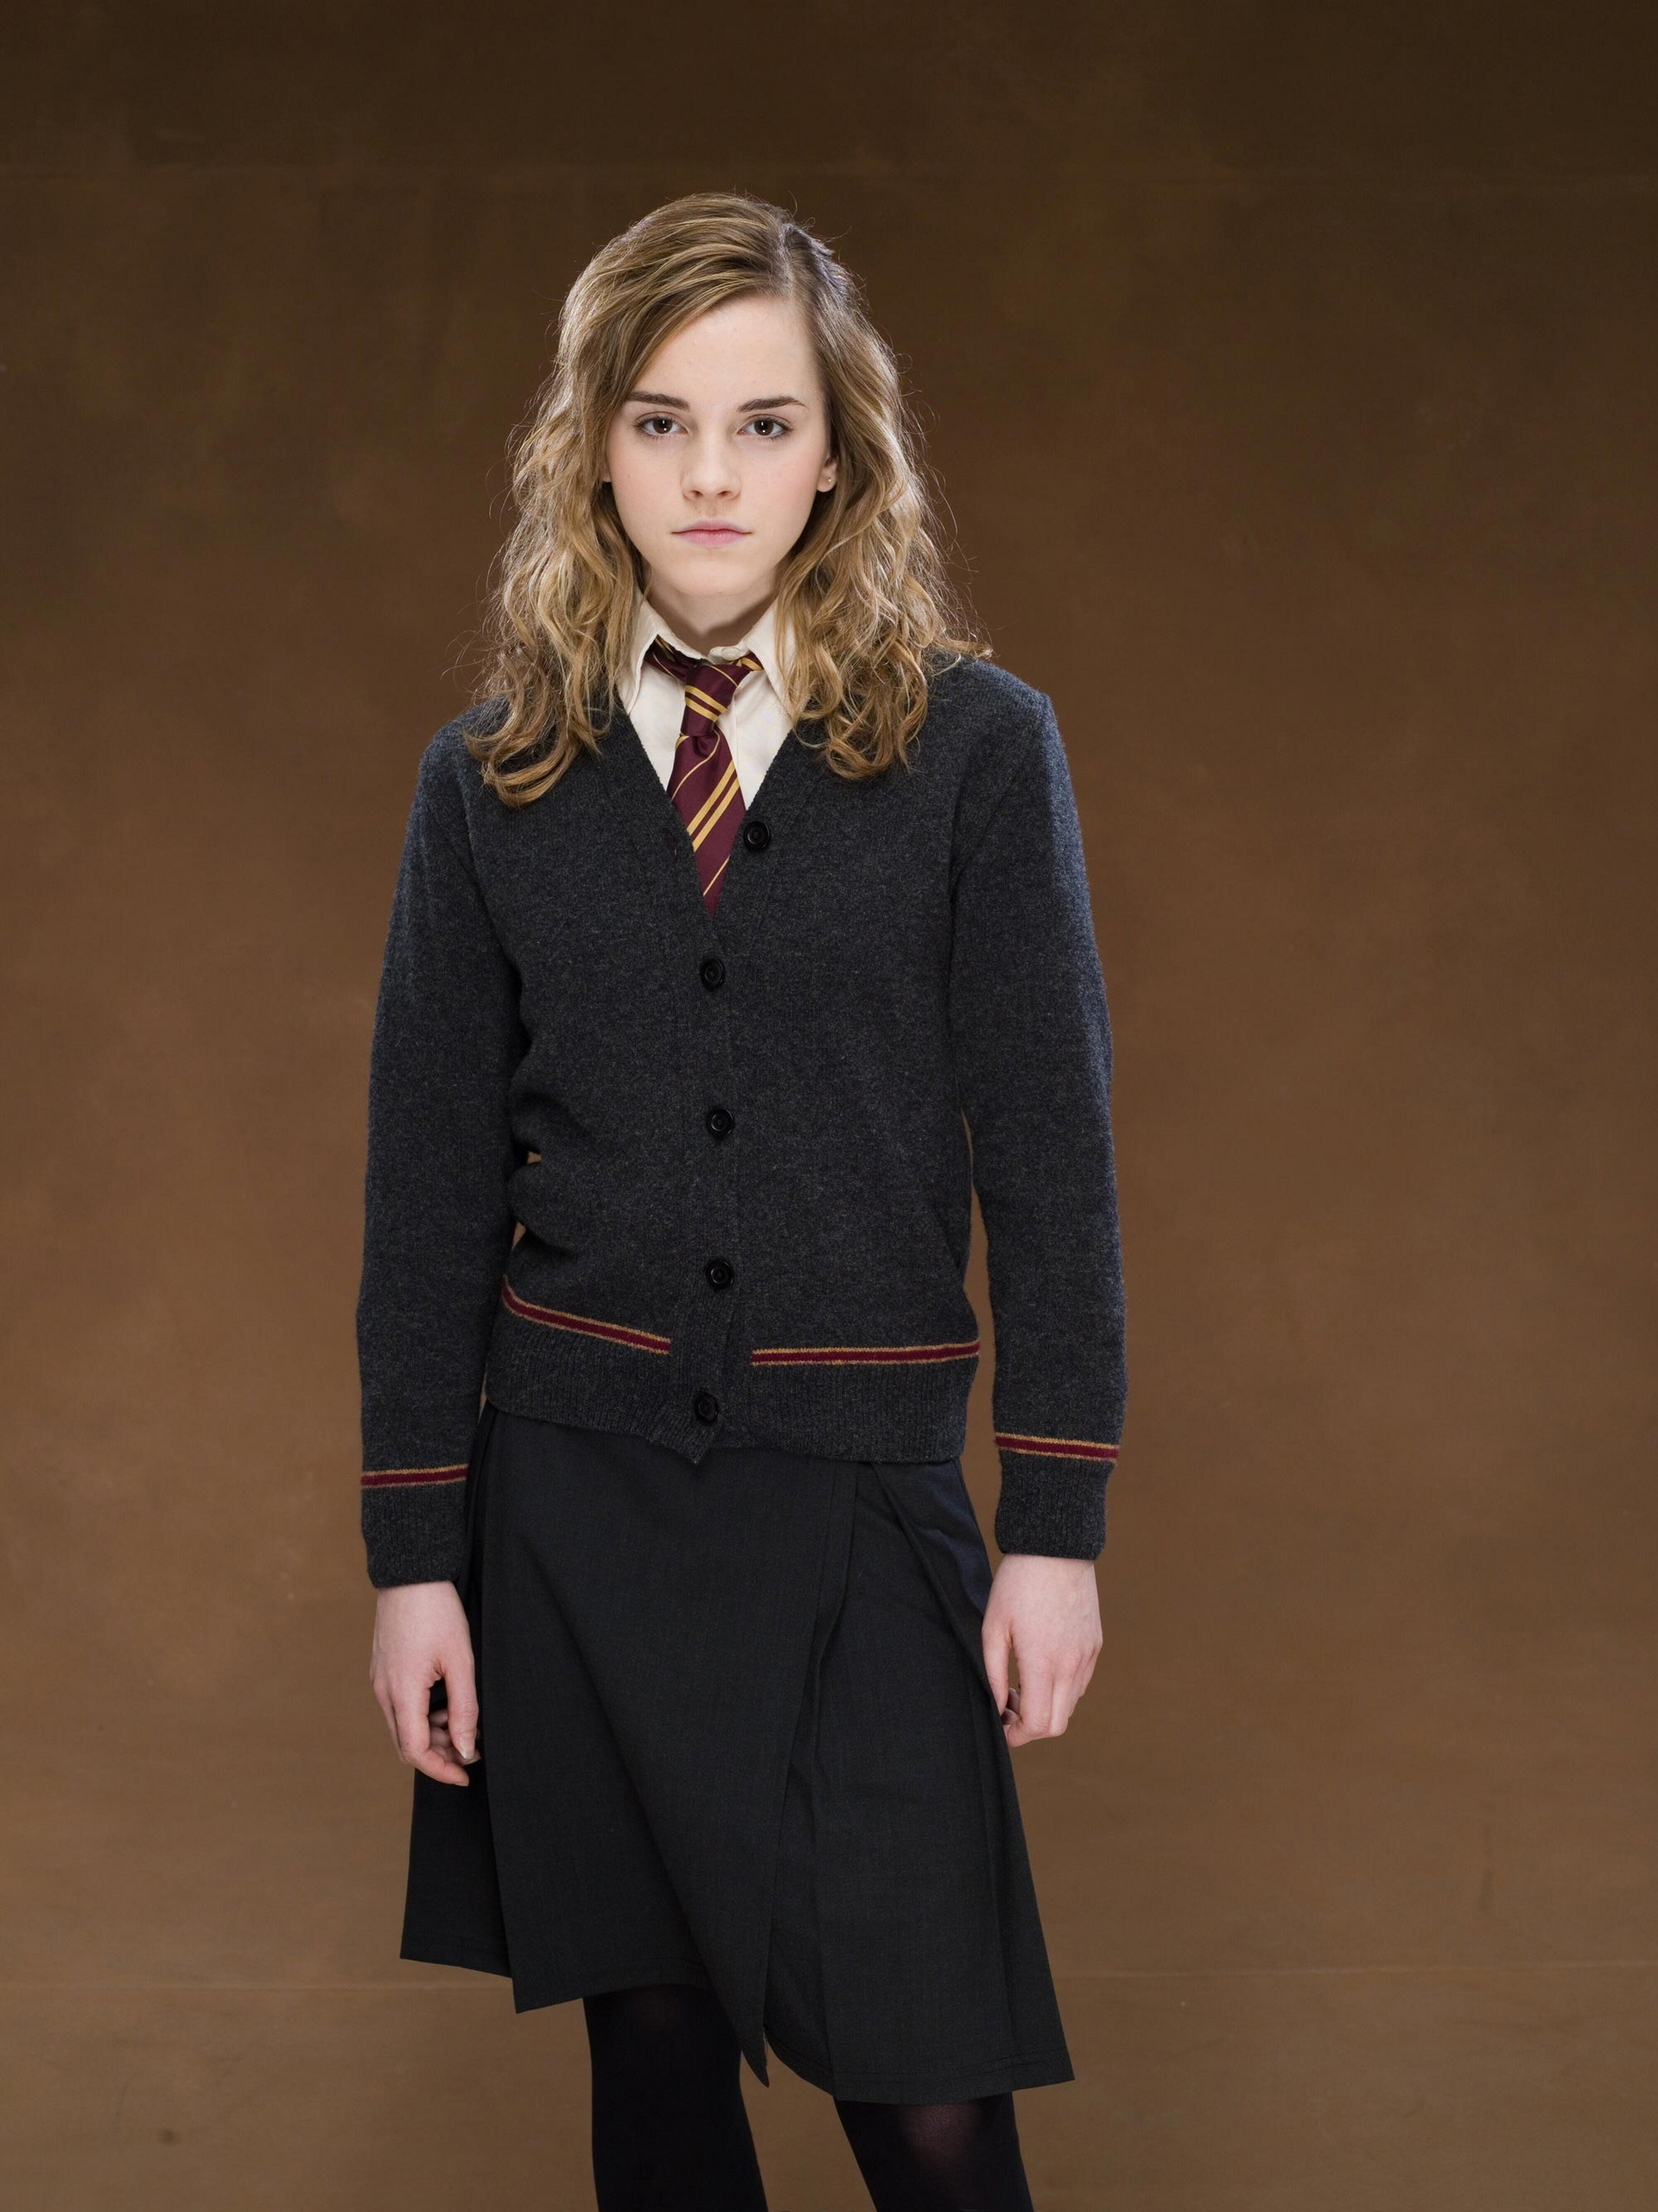 hermione granger sally a ward. Black Bedroom Furniture Sets. Home Design Ideas